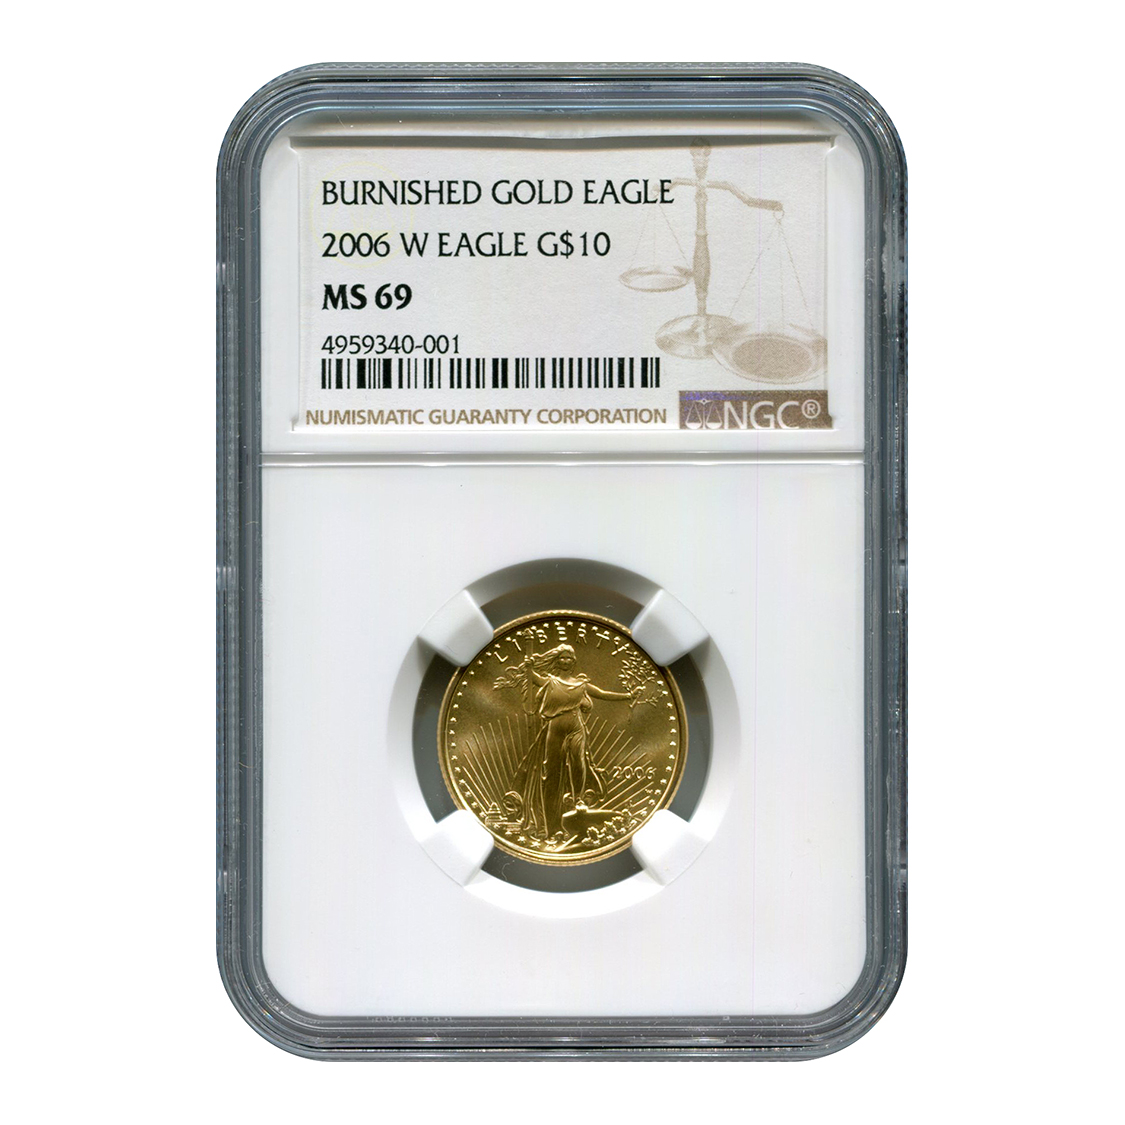 Certified Burnished American $10 Gold Eagle 2006-W MS69 NGC